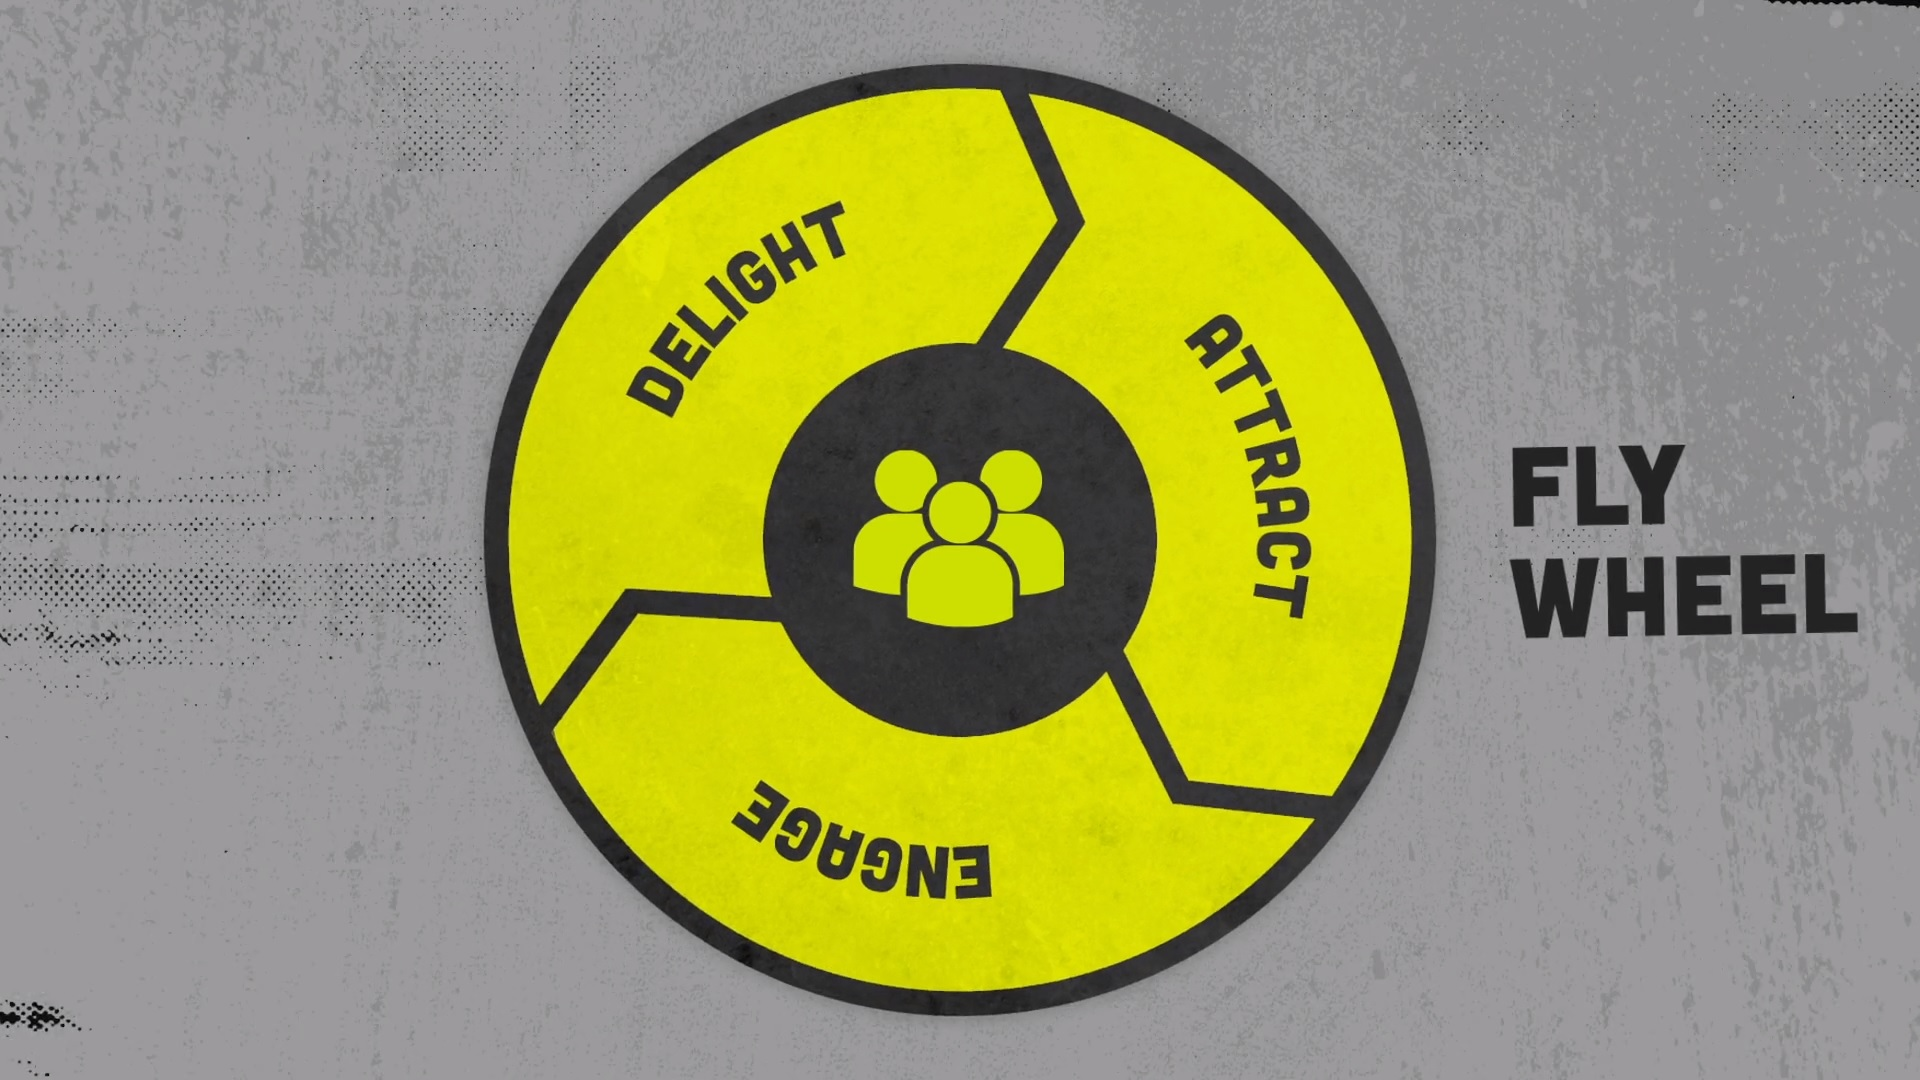 The flywheel sales model, segmented into attract, engage, and delight